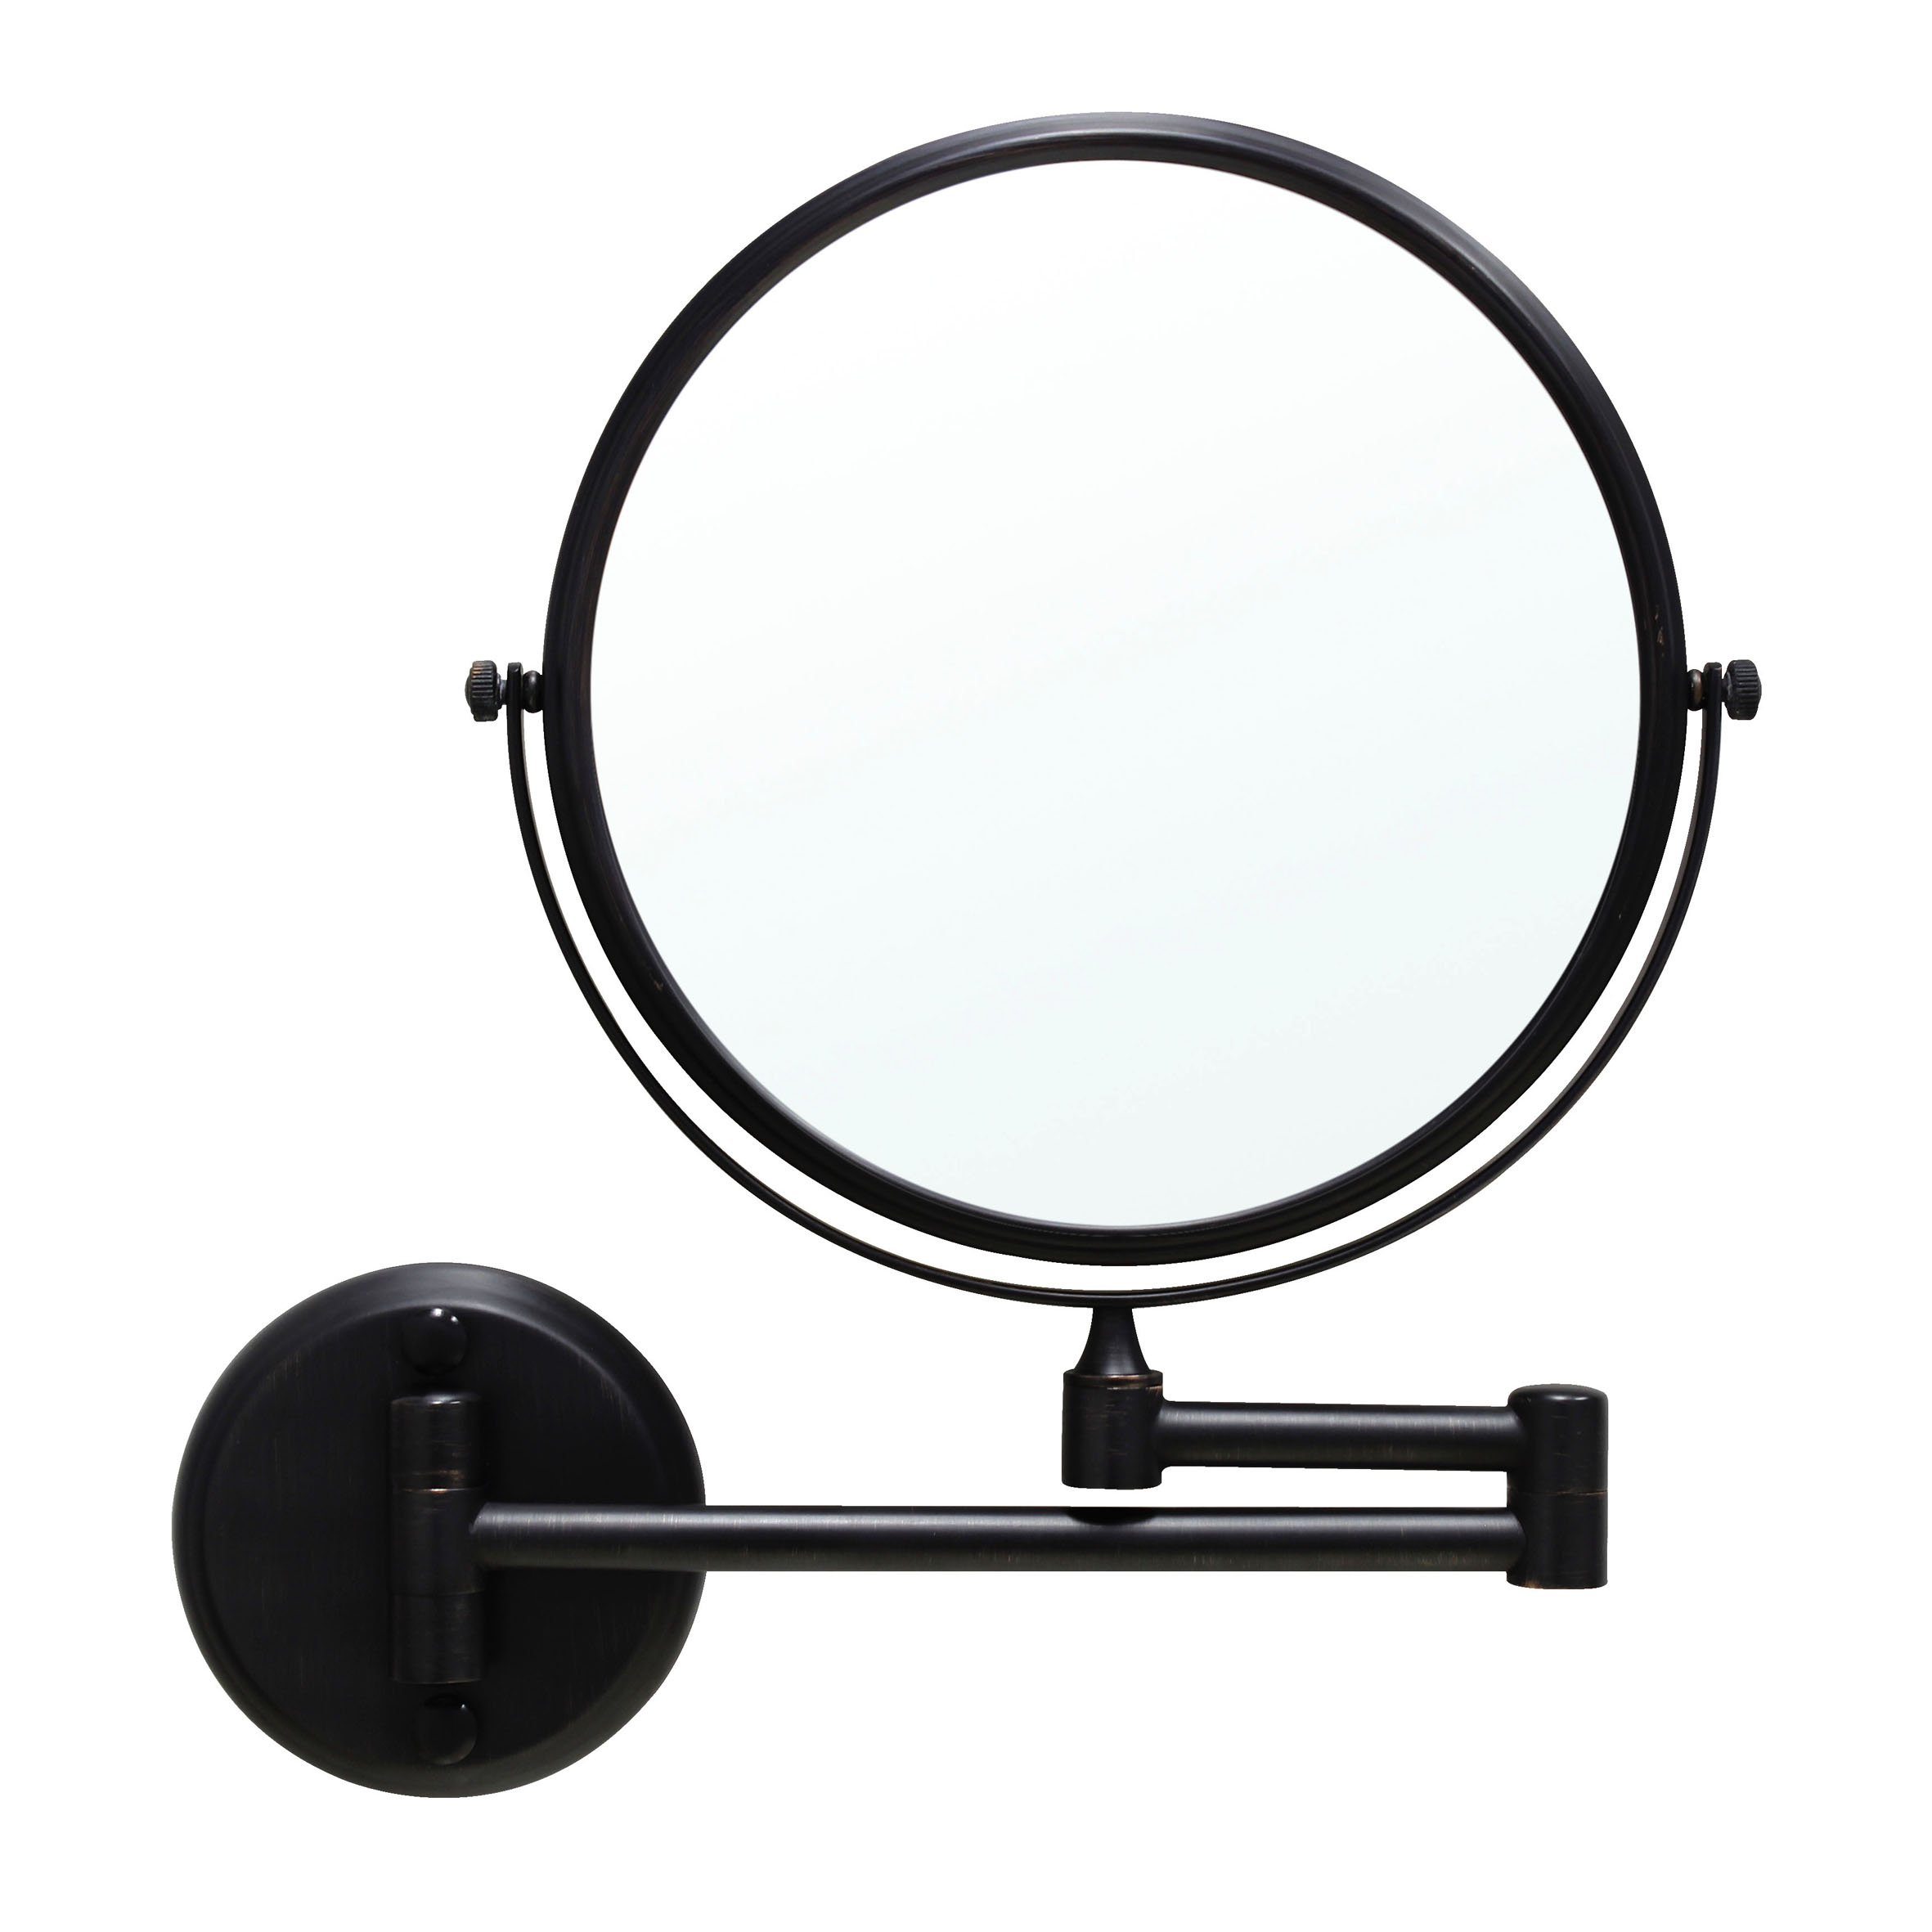 MODONA 8'' Two-Sided 1X and 5X Wall-Mounted Mirror, Made of BRASS - Rubbed Bronze - 5 Year Warrantee